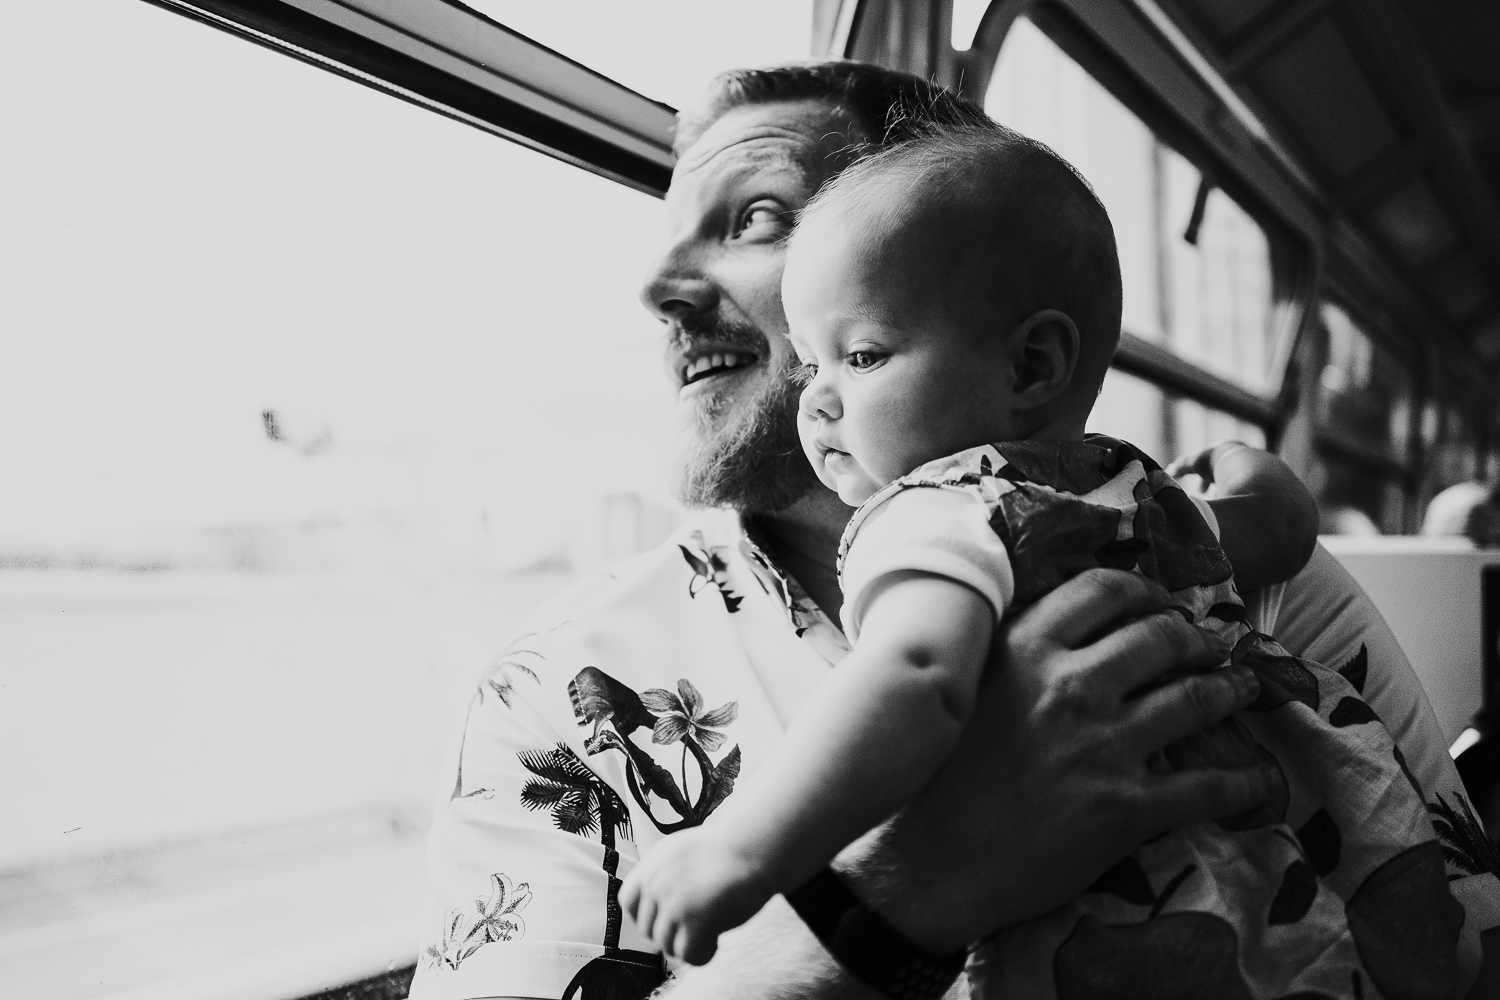 day in the life photo shoot father and baby girl on train black and white shot looking out of window